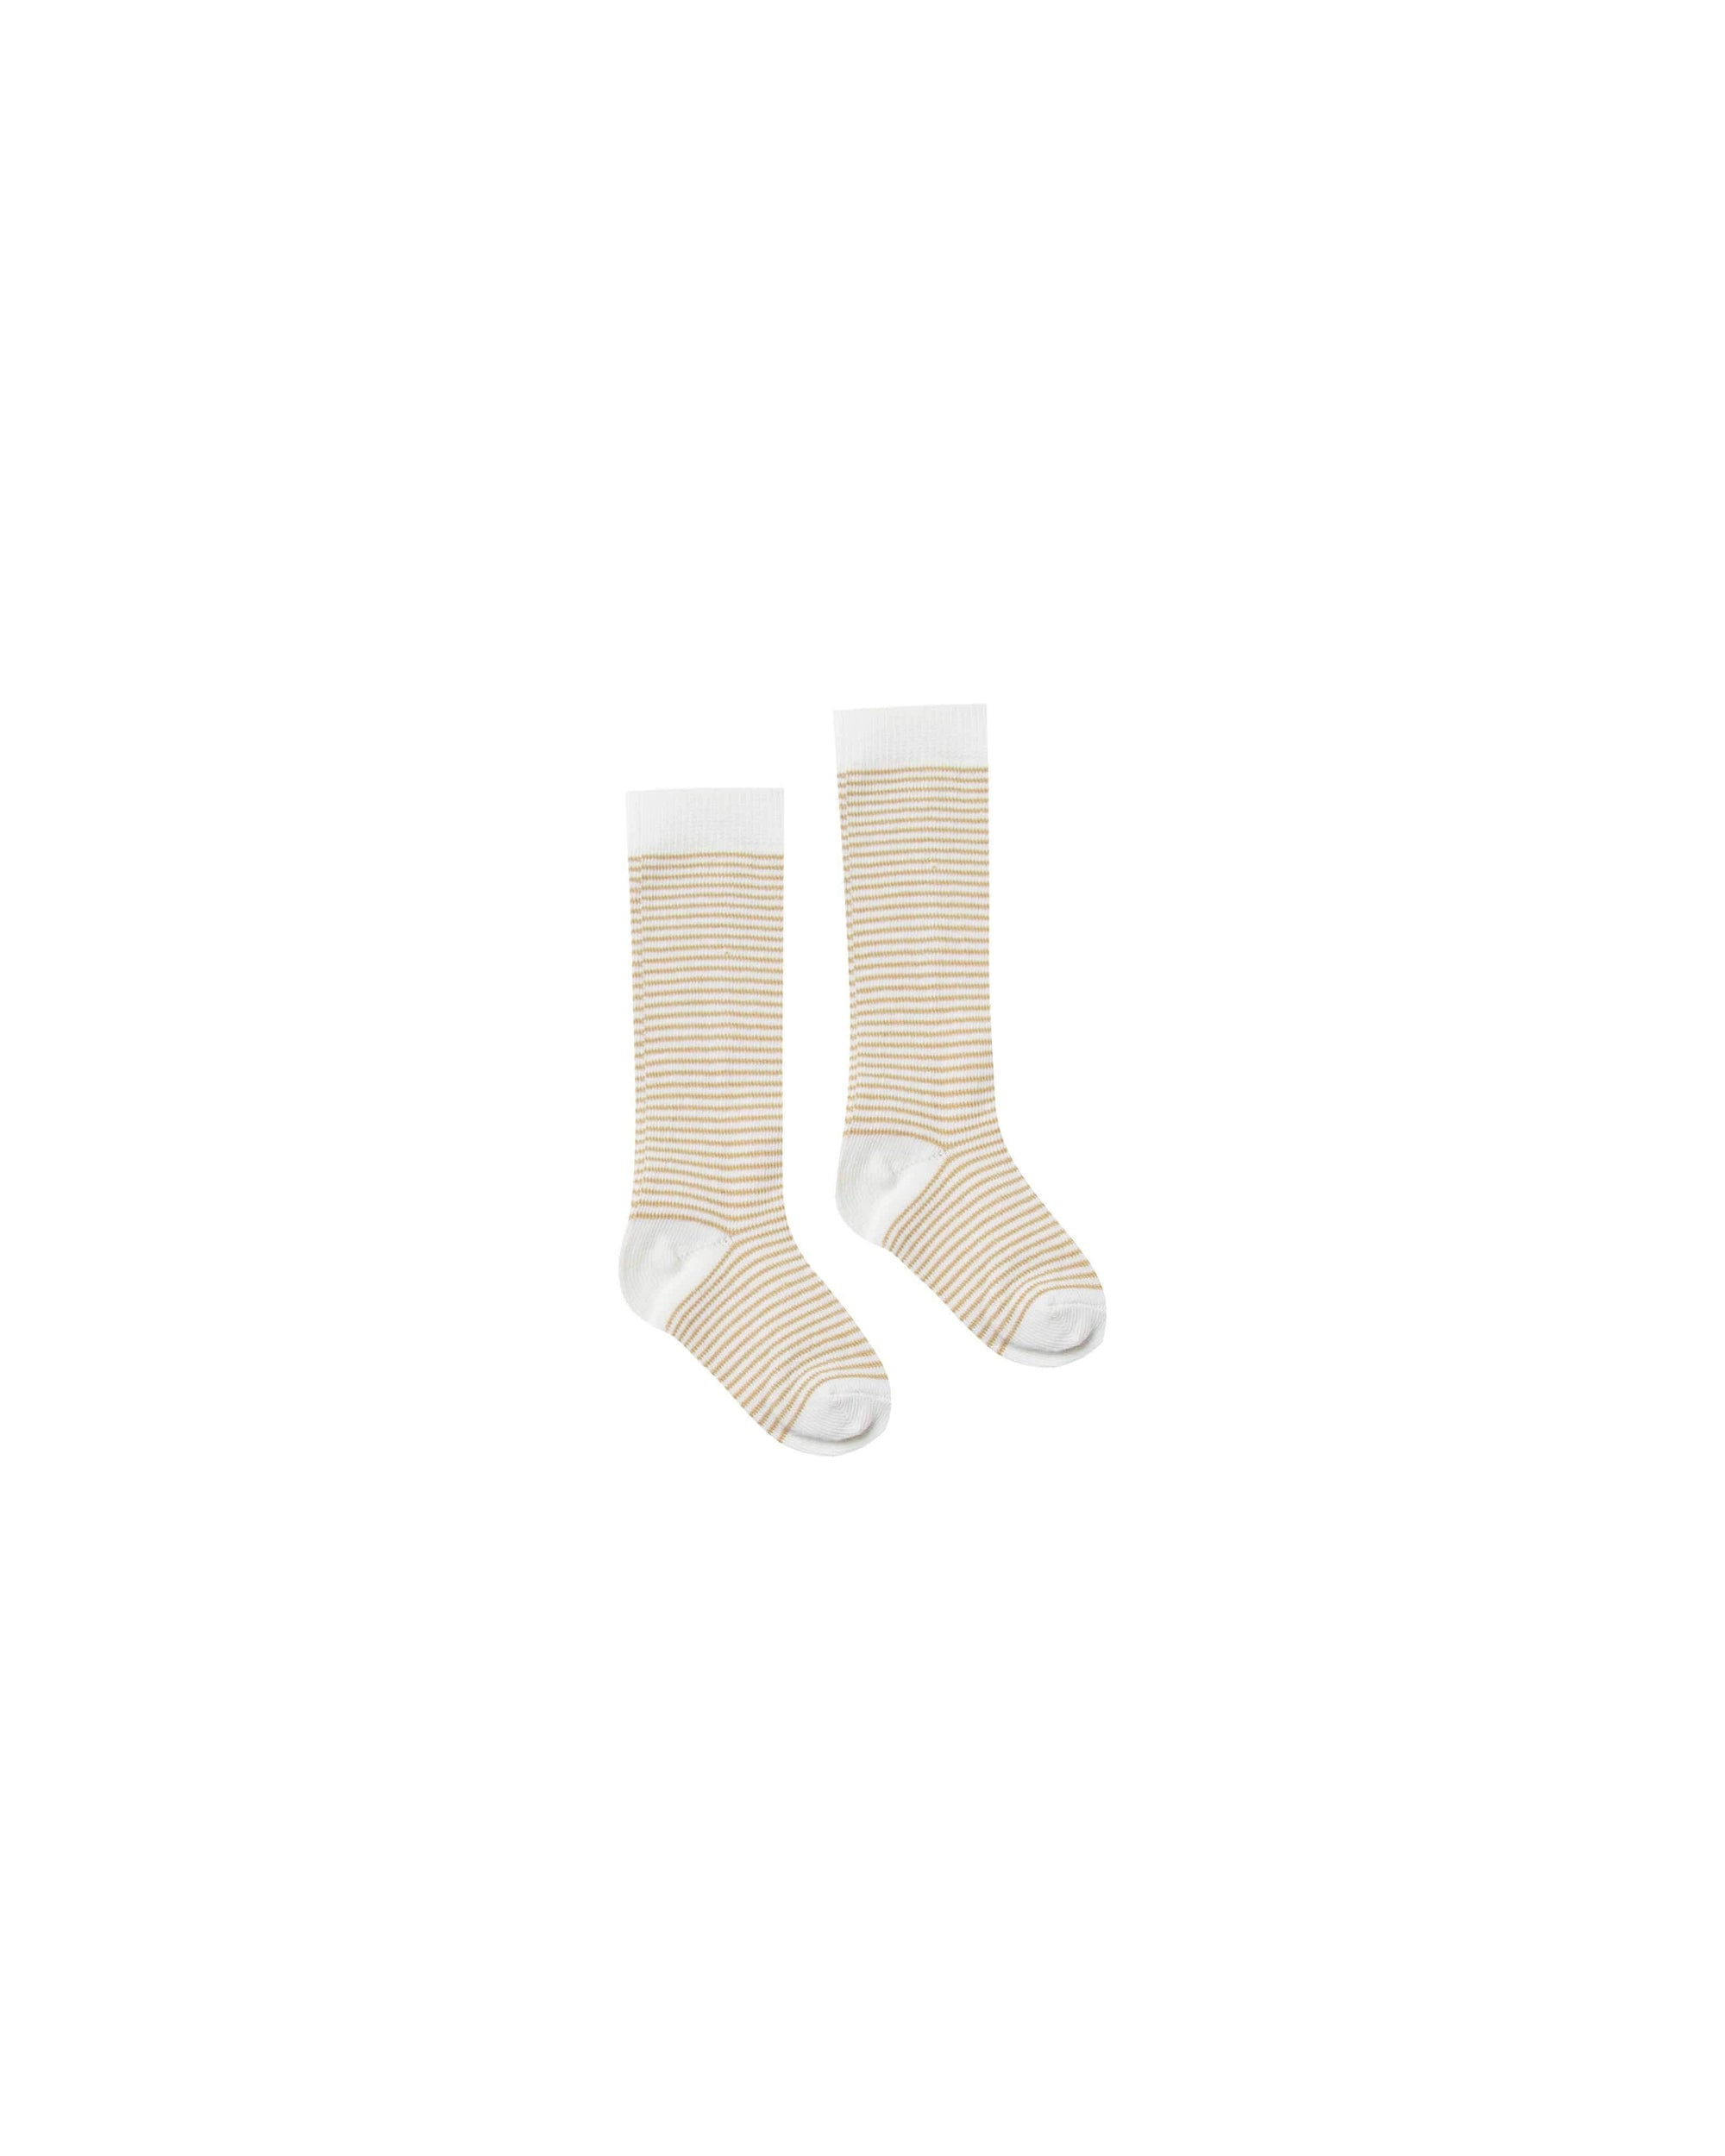 Rylee & Cru Stripe Socks - Honey